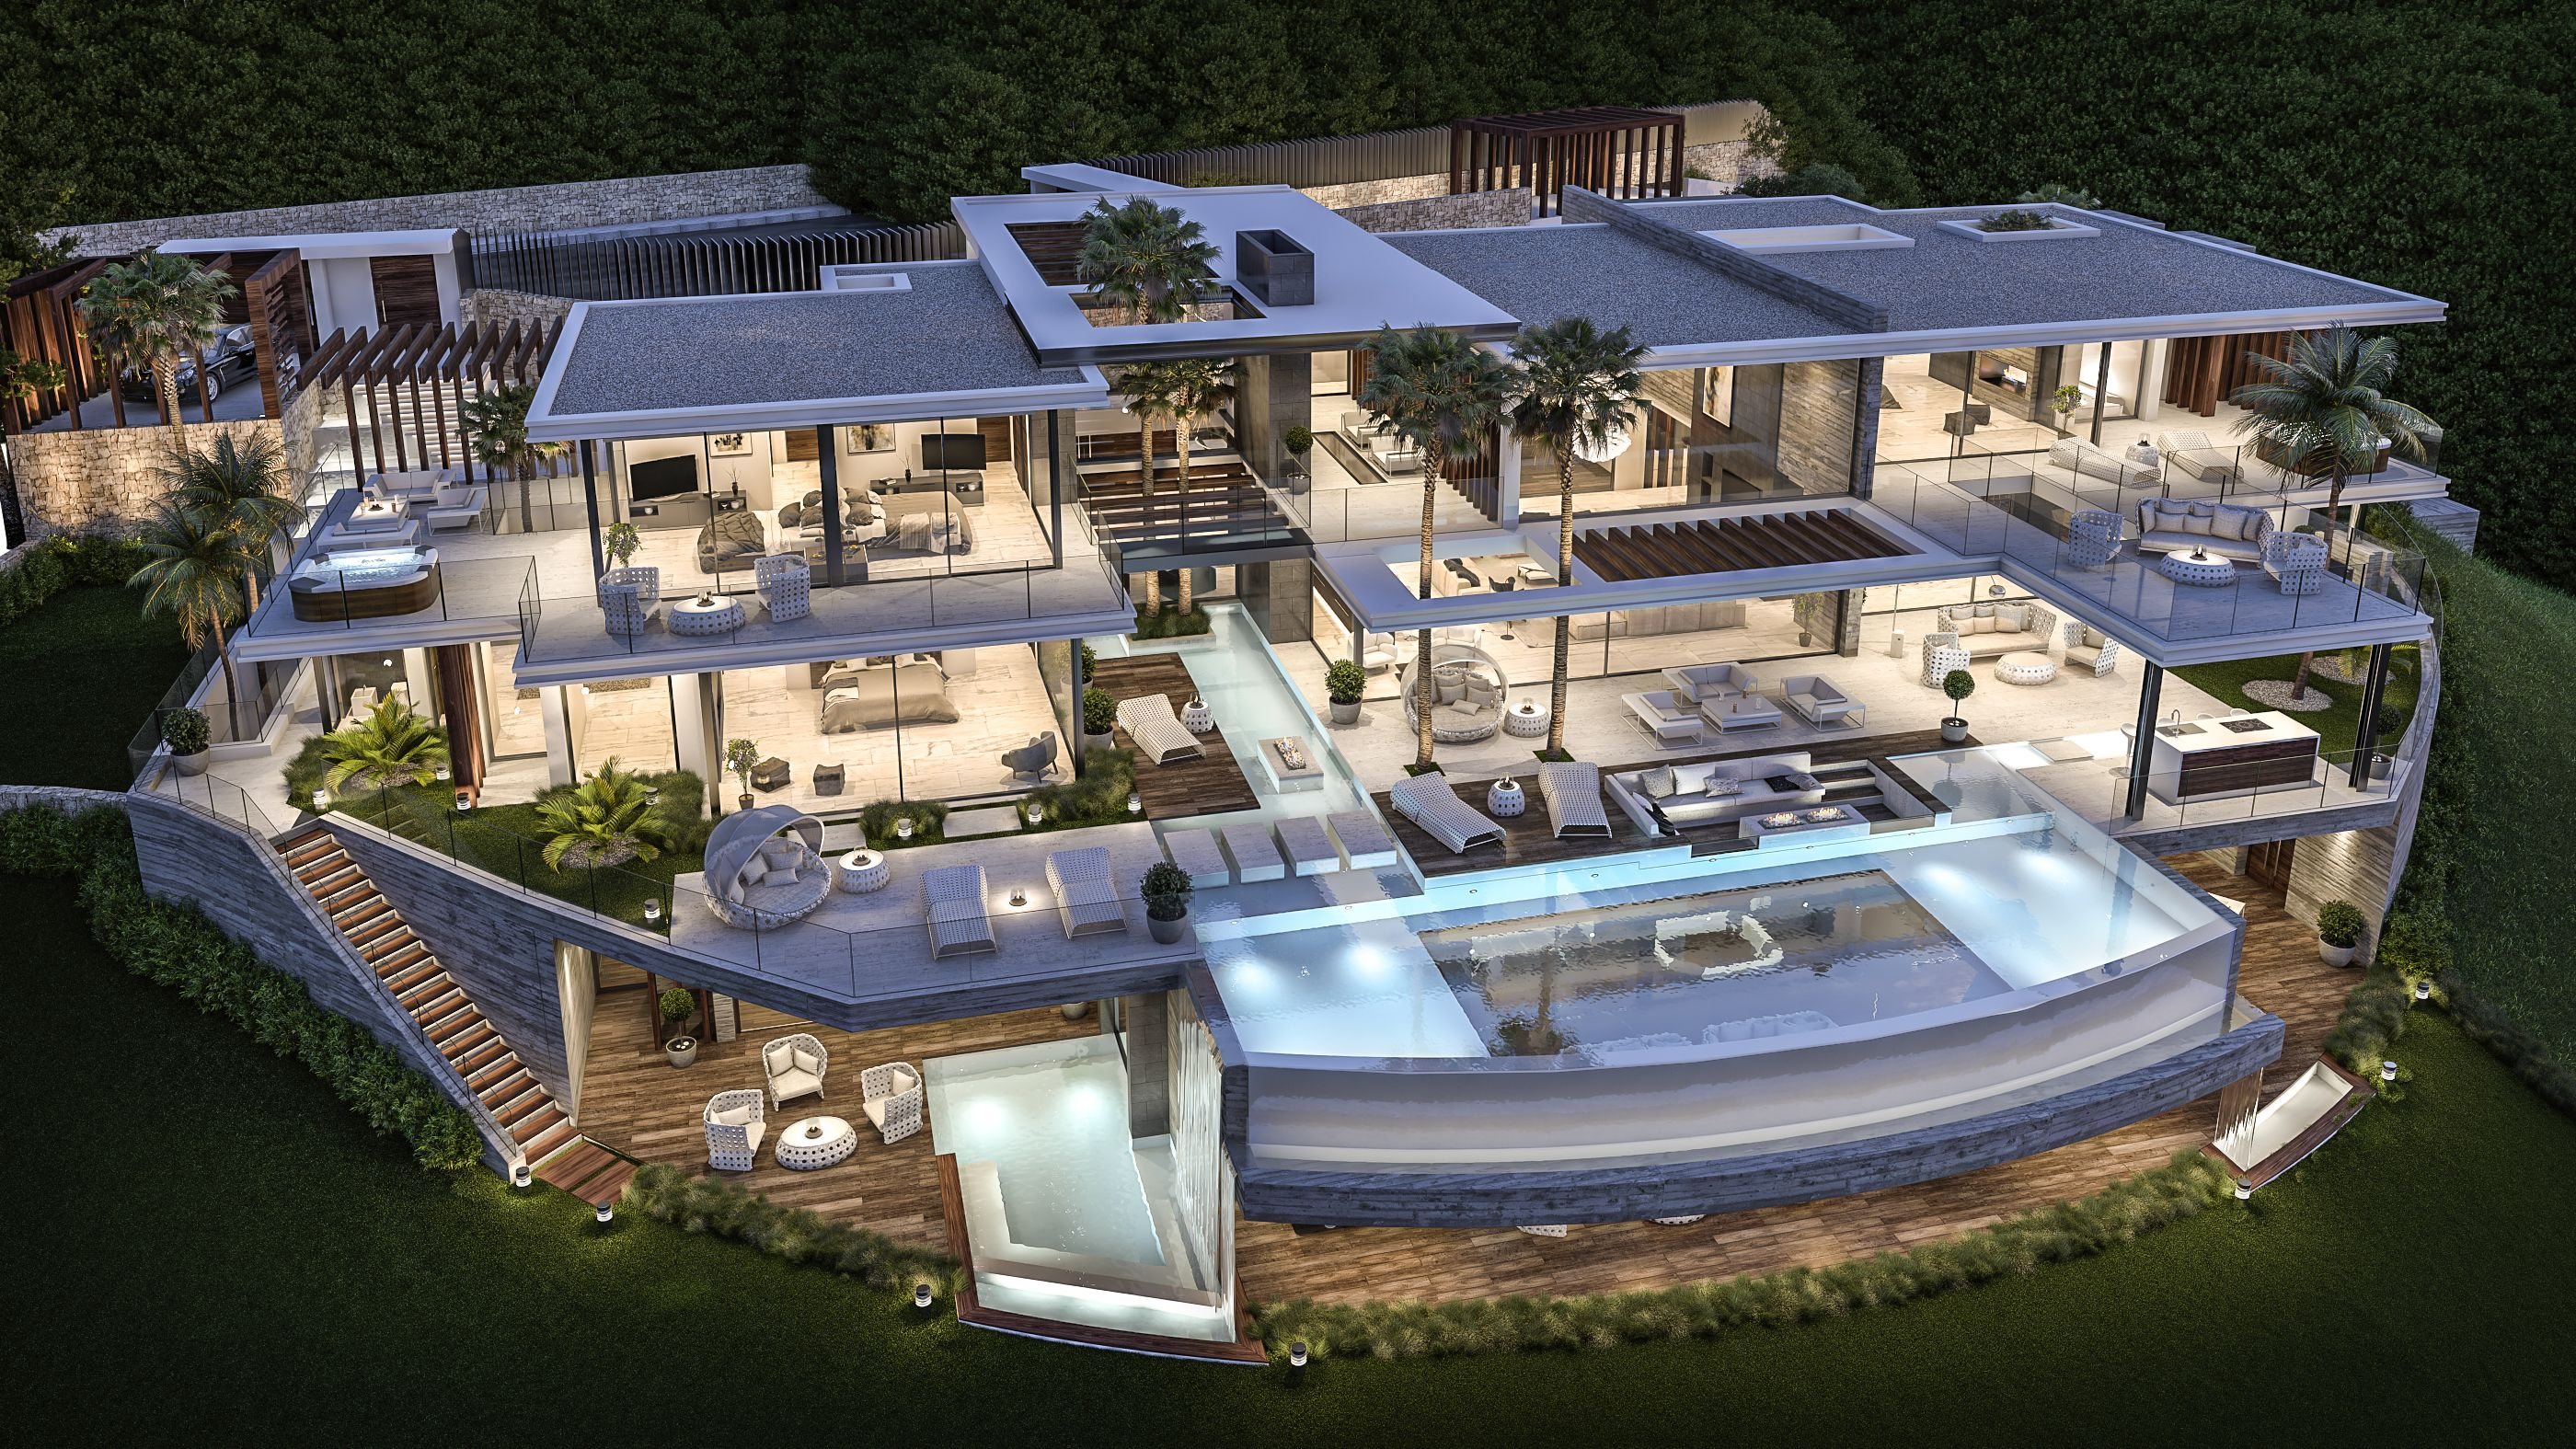 Luxury Homes Architecture Design Villa Luxury Homes Dream Houses Mansions Modern Mansion